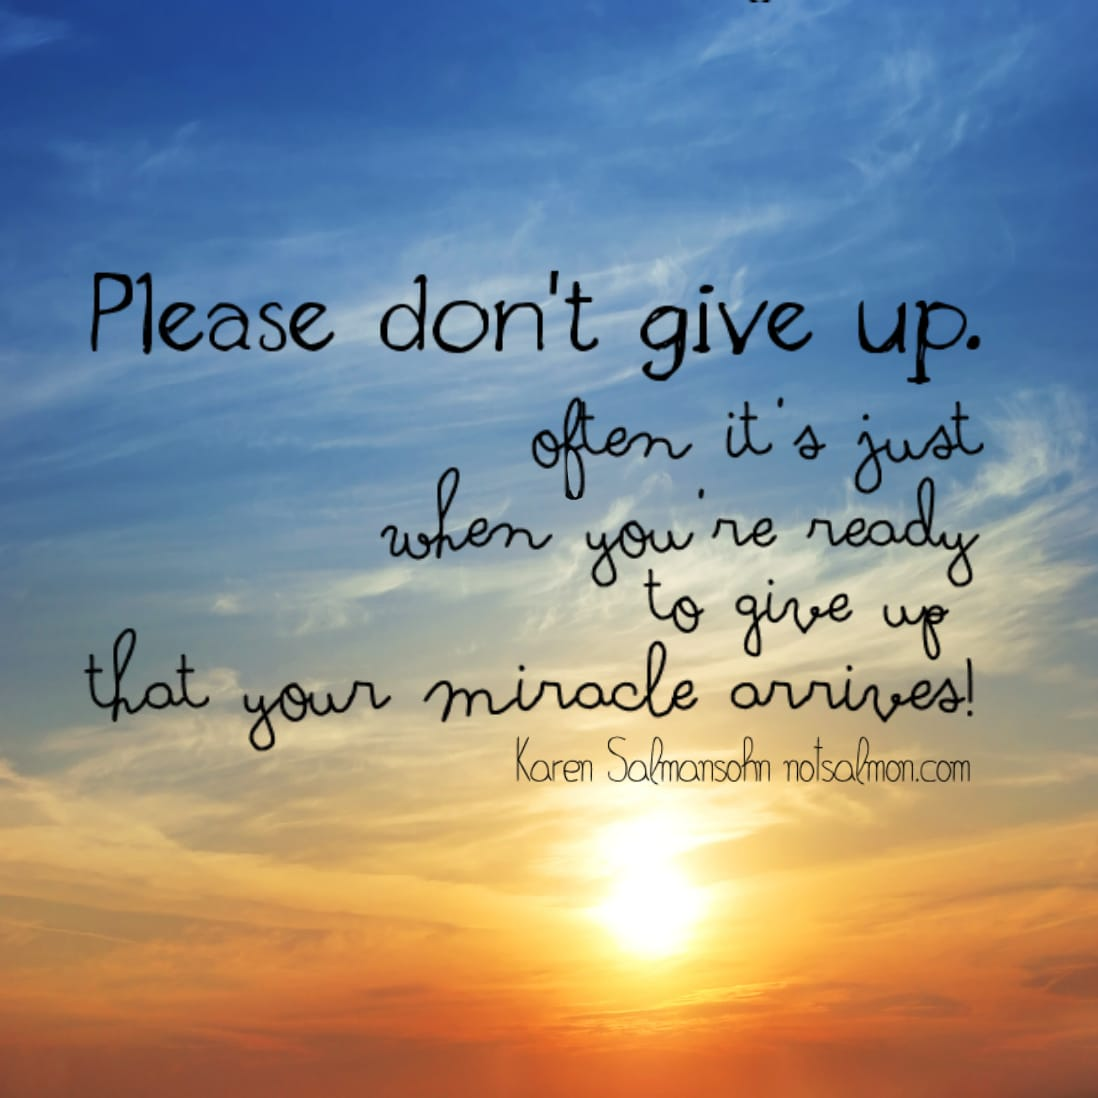 Motivational Inspirational Quotes: Please Don't Give Up